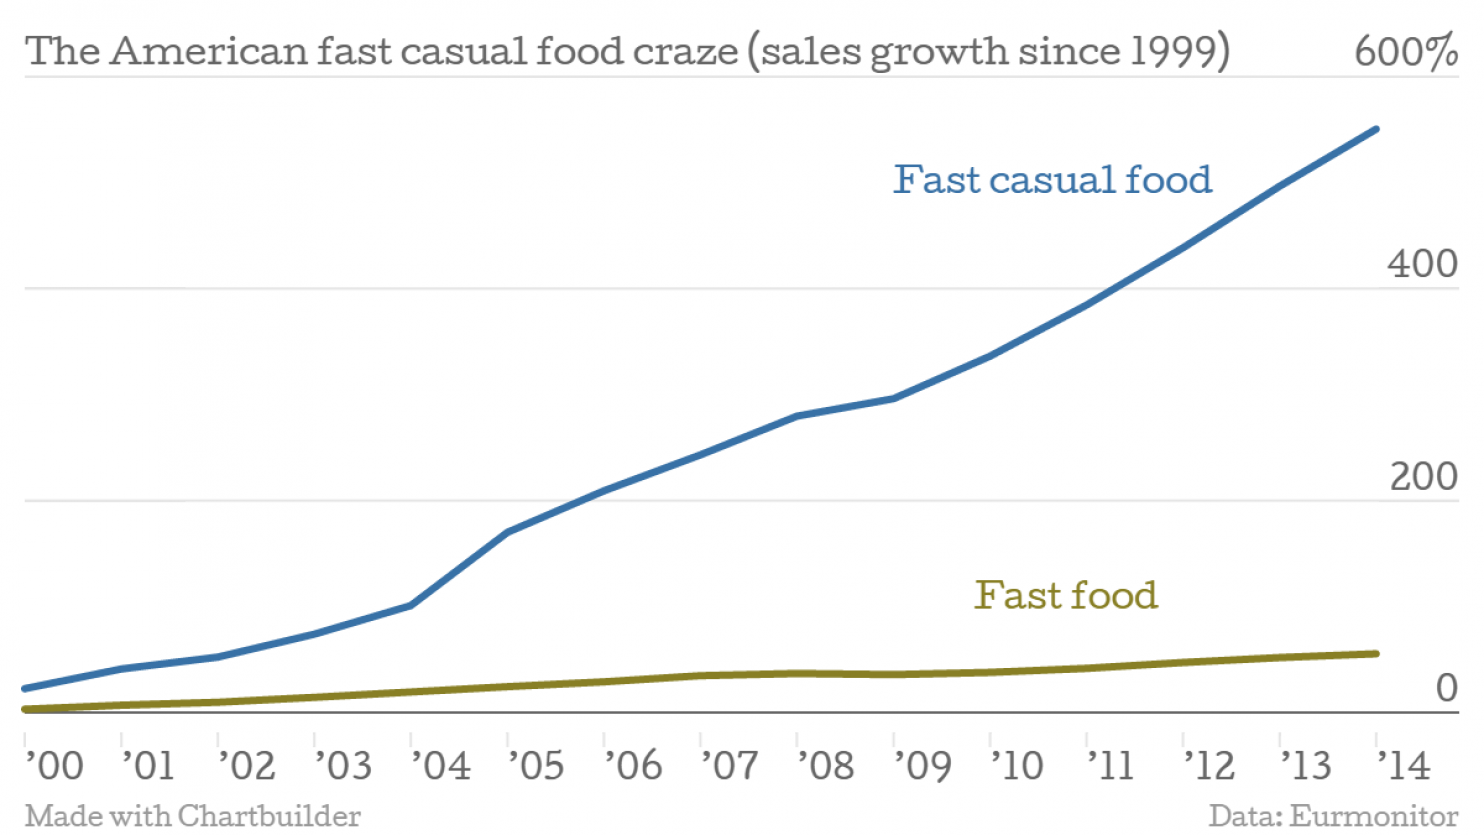 The Washington Post:  The Chipotle effect: Why America is obsessed with fast casual food